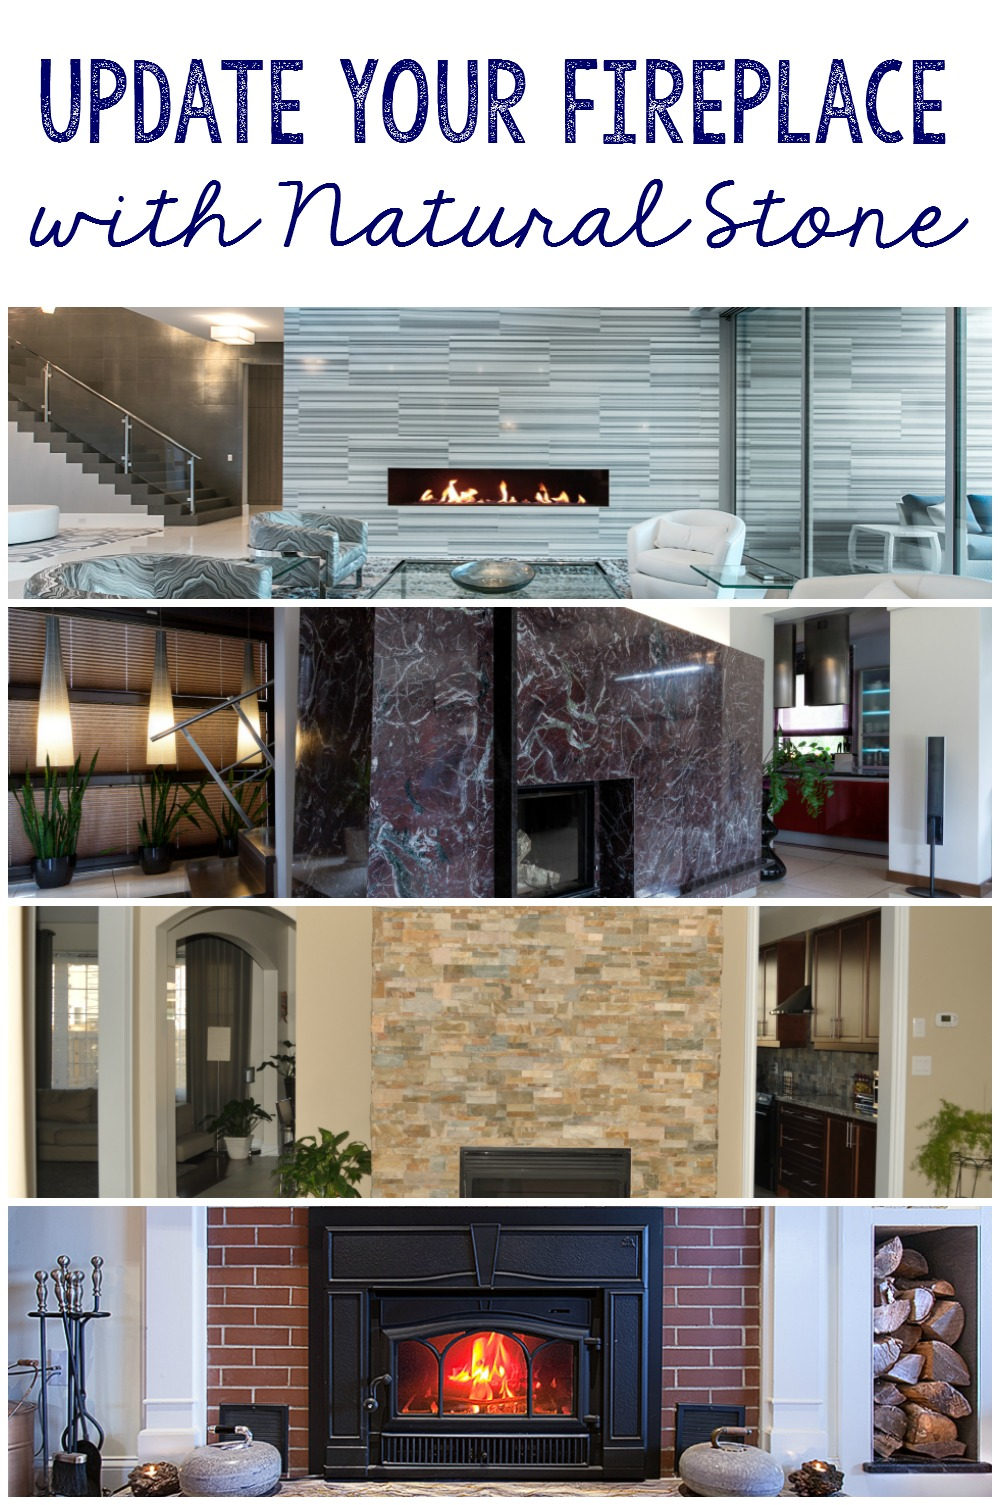 magazine update ideas fireplace makeover trends paint lispiri colors is best brick com online renovation home the refinish